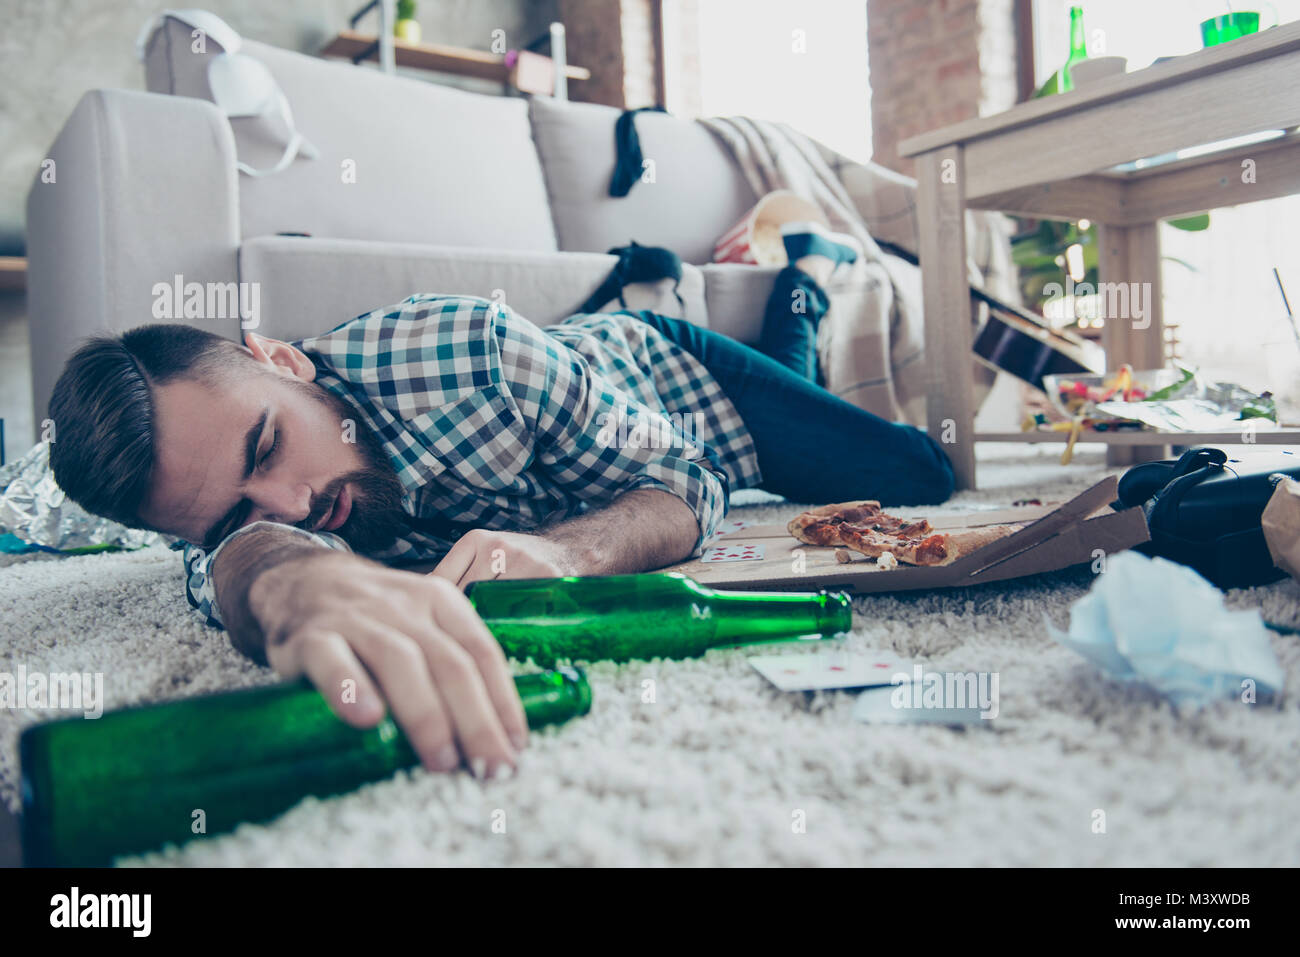 Sick drunk dreamy bearded guy clothed in checkered shirt and denim jeans is sleeping on the floor with an empty - Stock Image